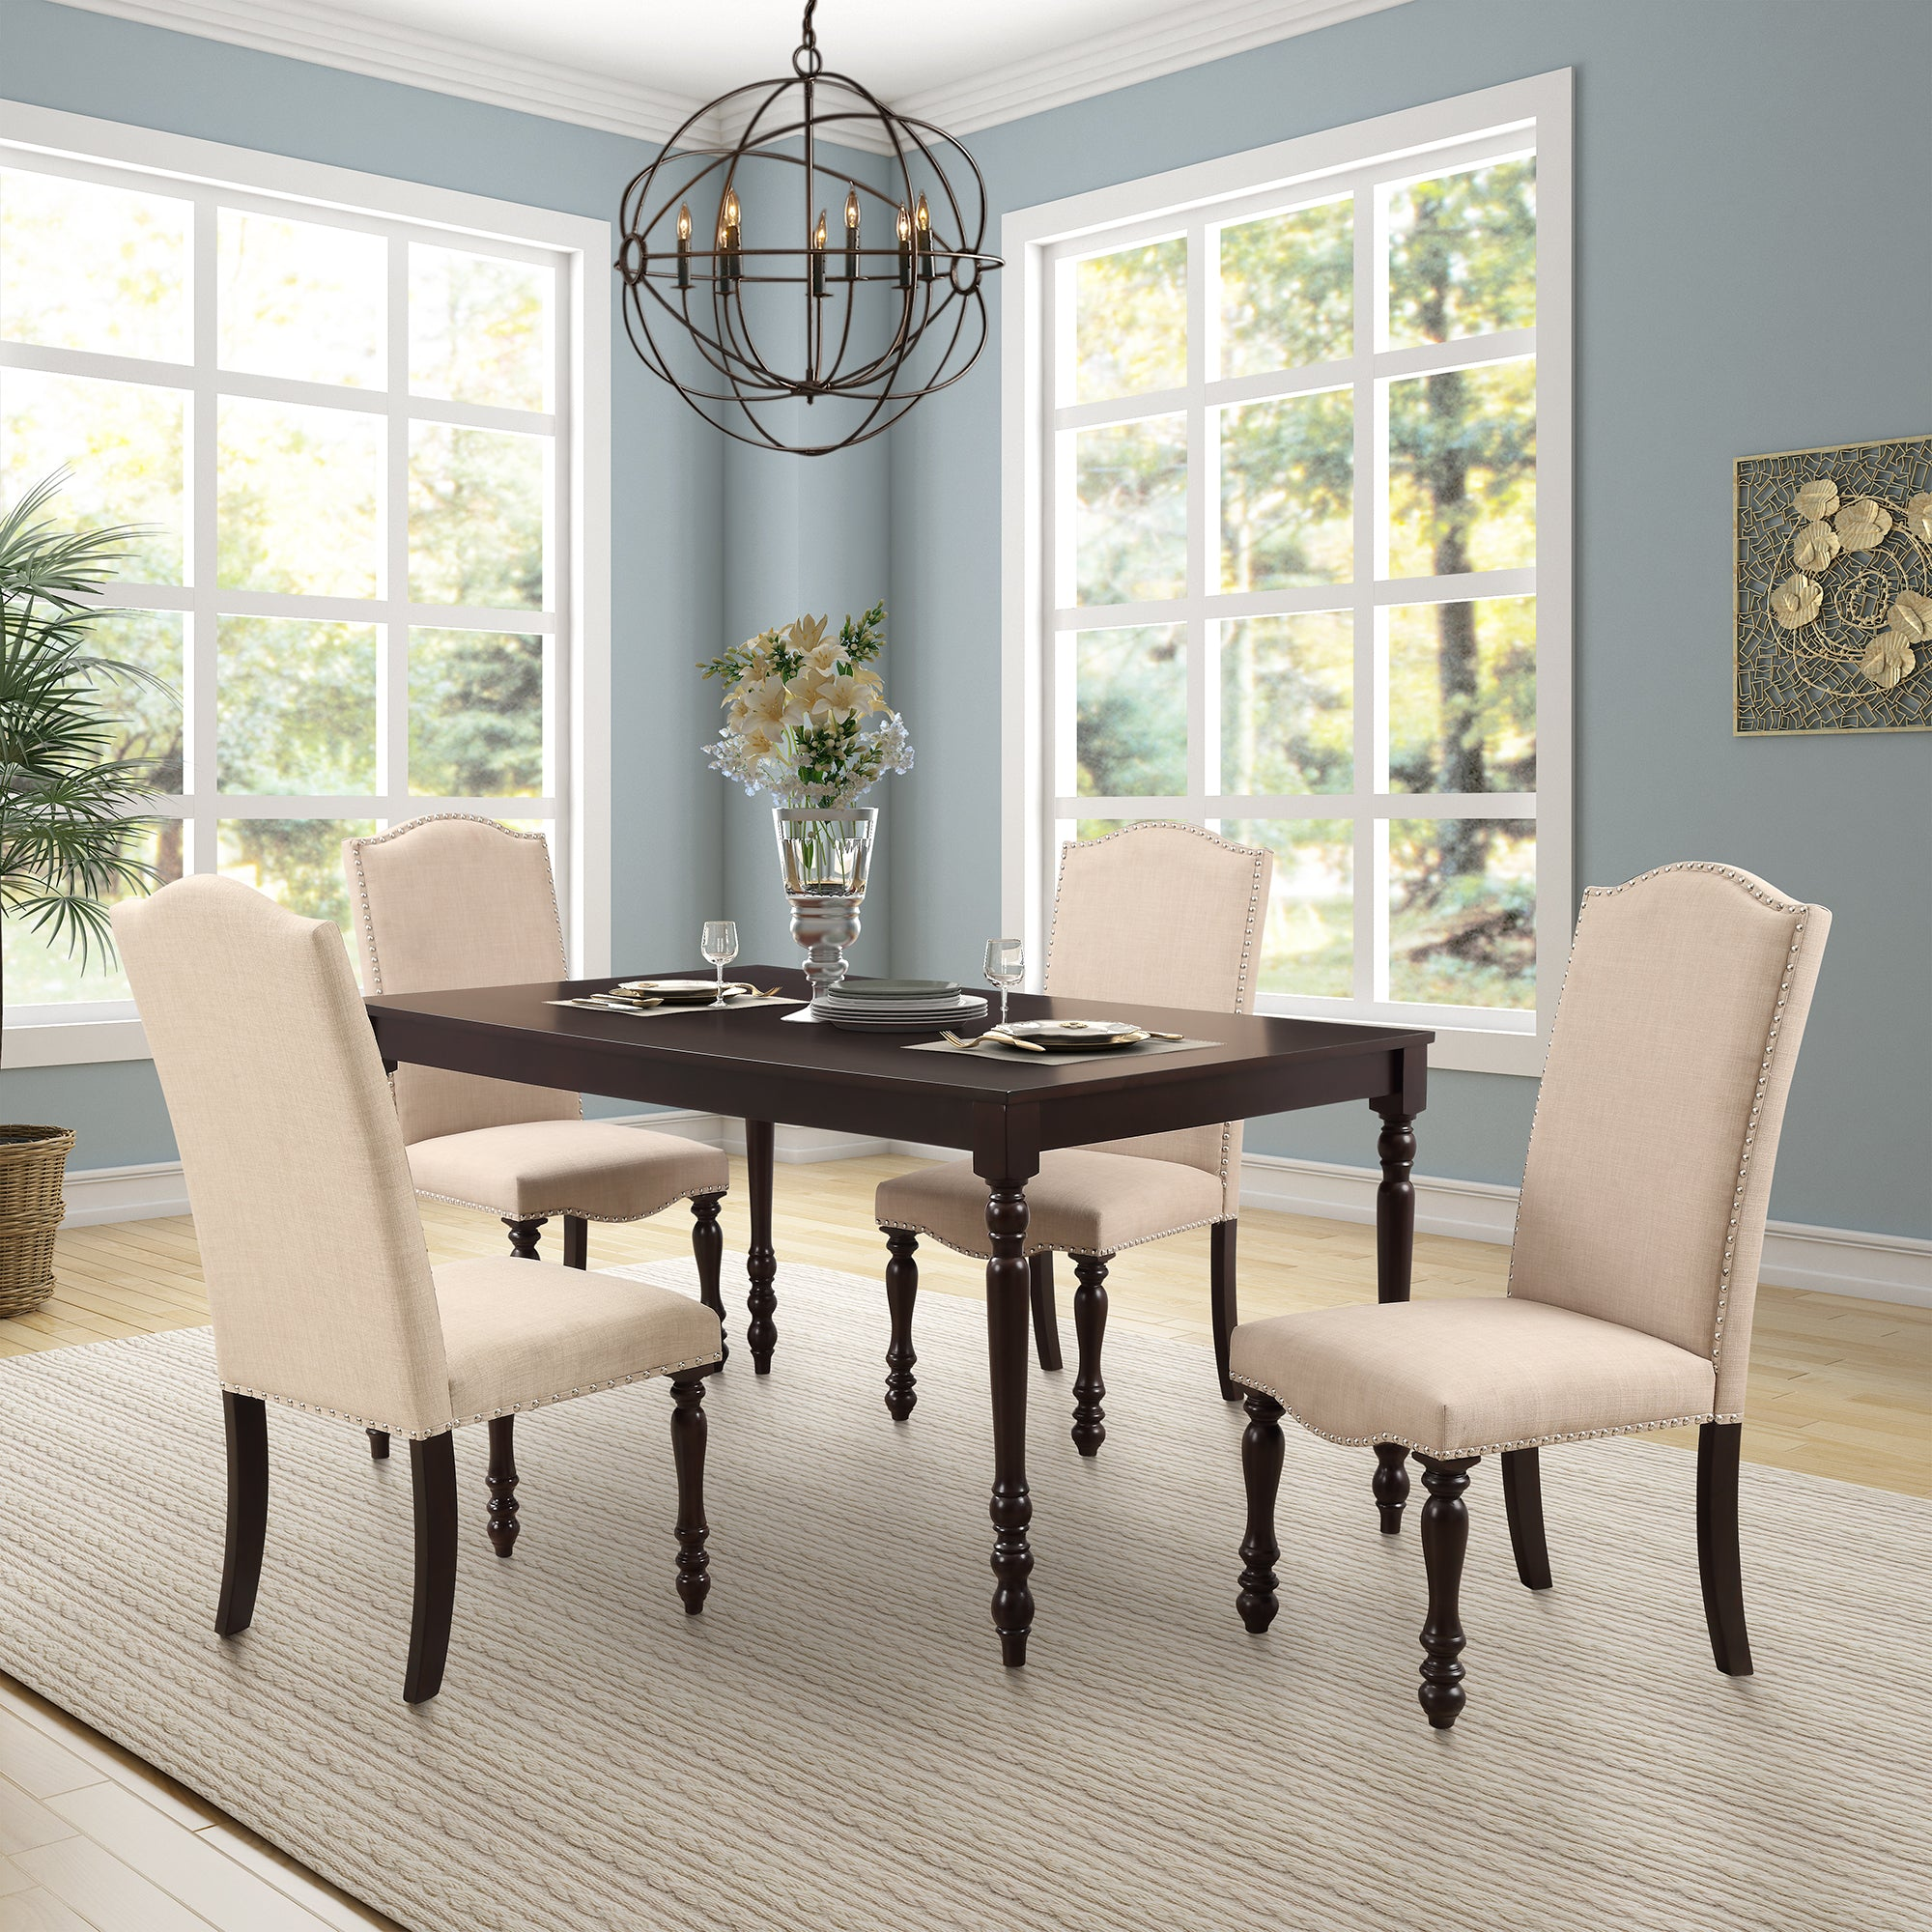 Dining Set 5 Piece Dining Set comes with a grand size table and 4 matching chairs